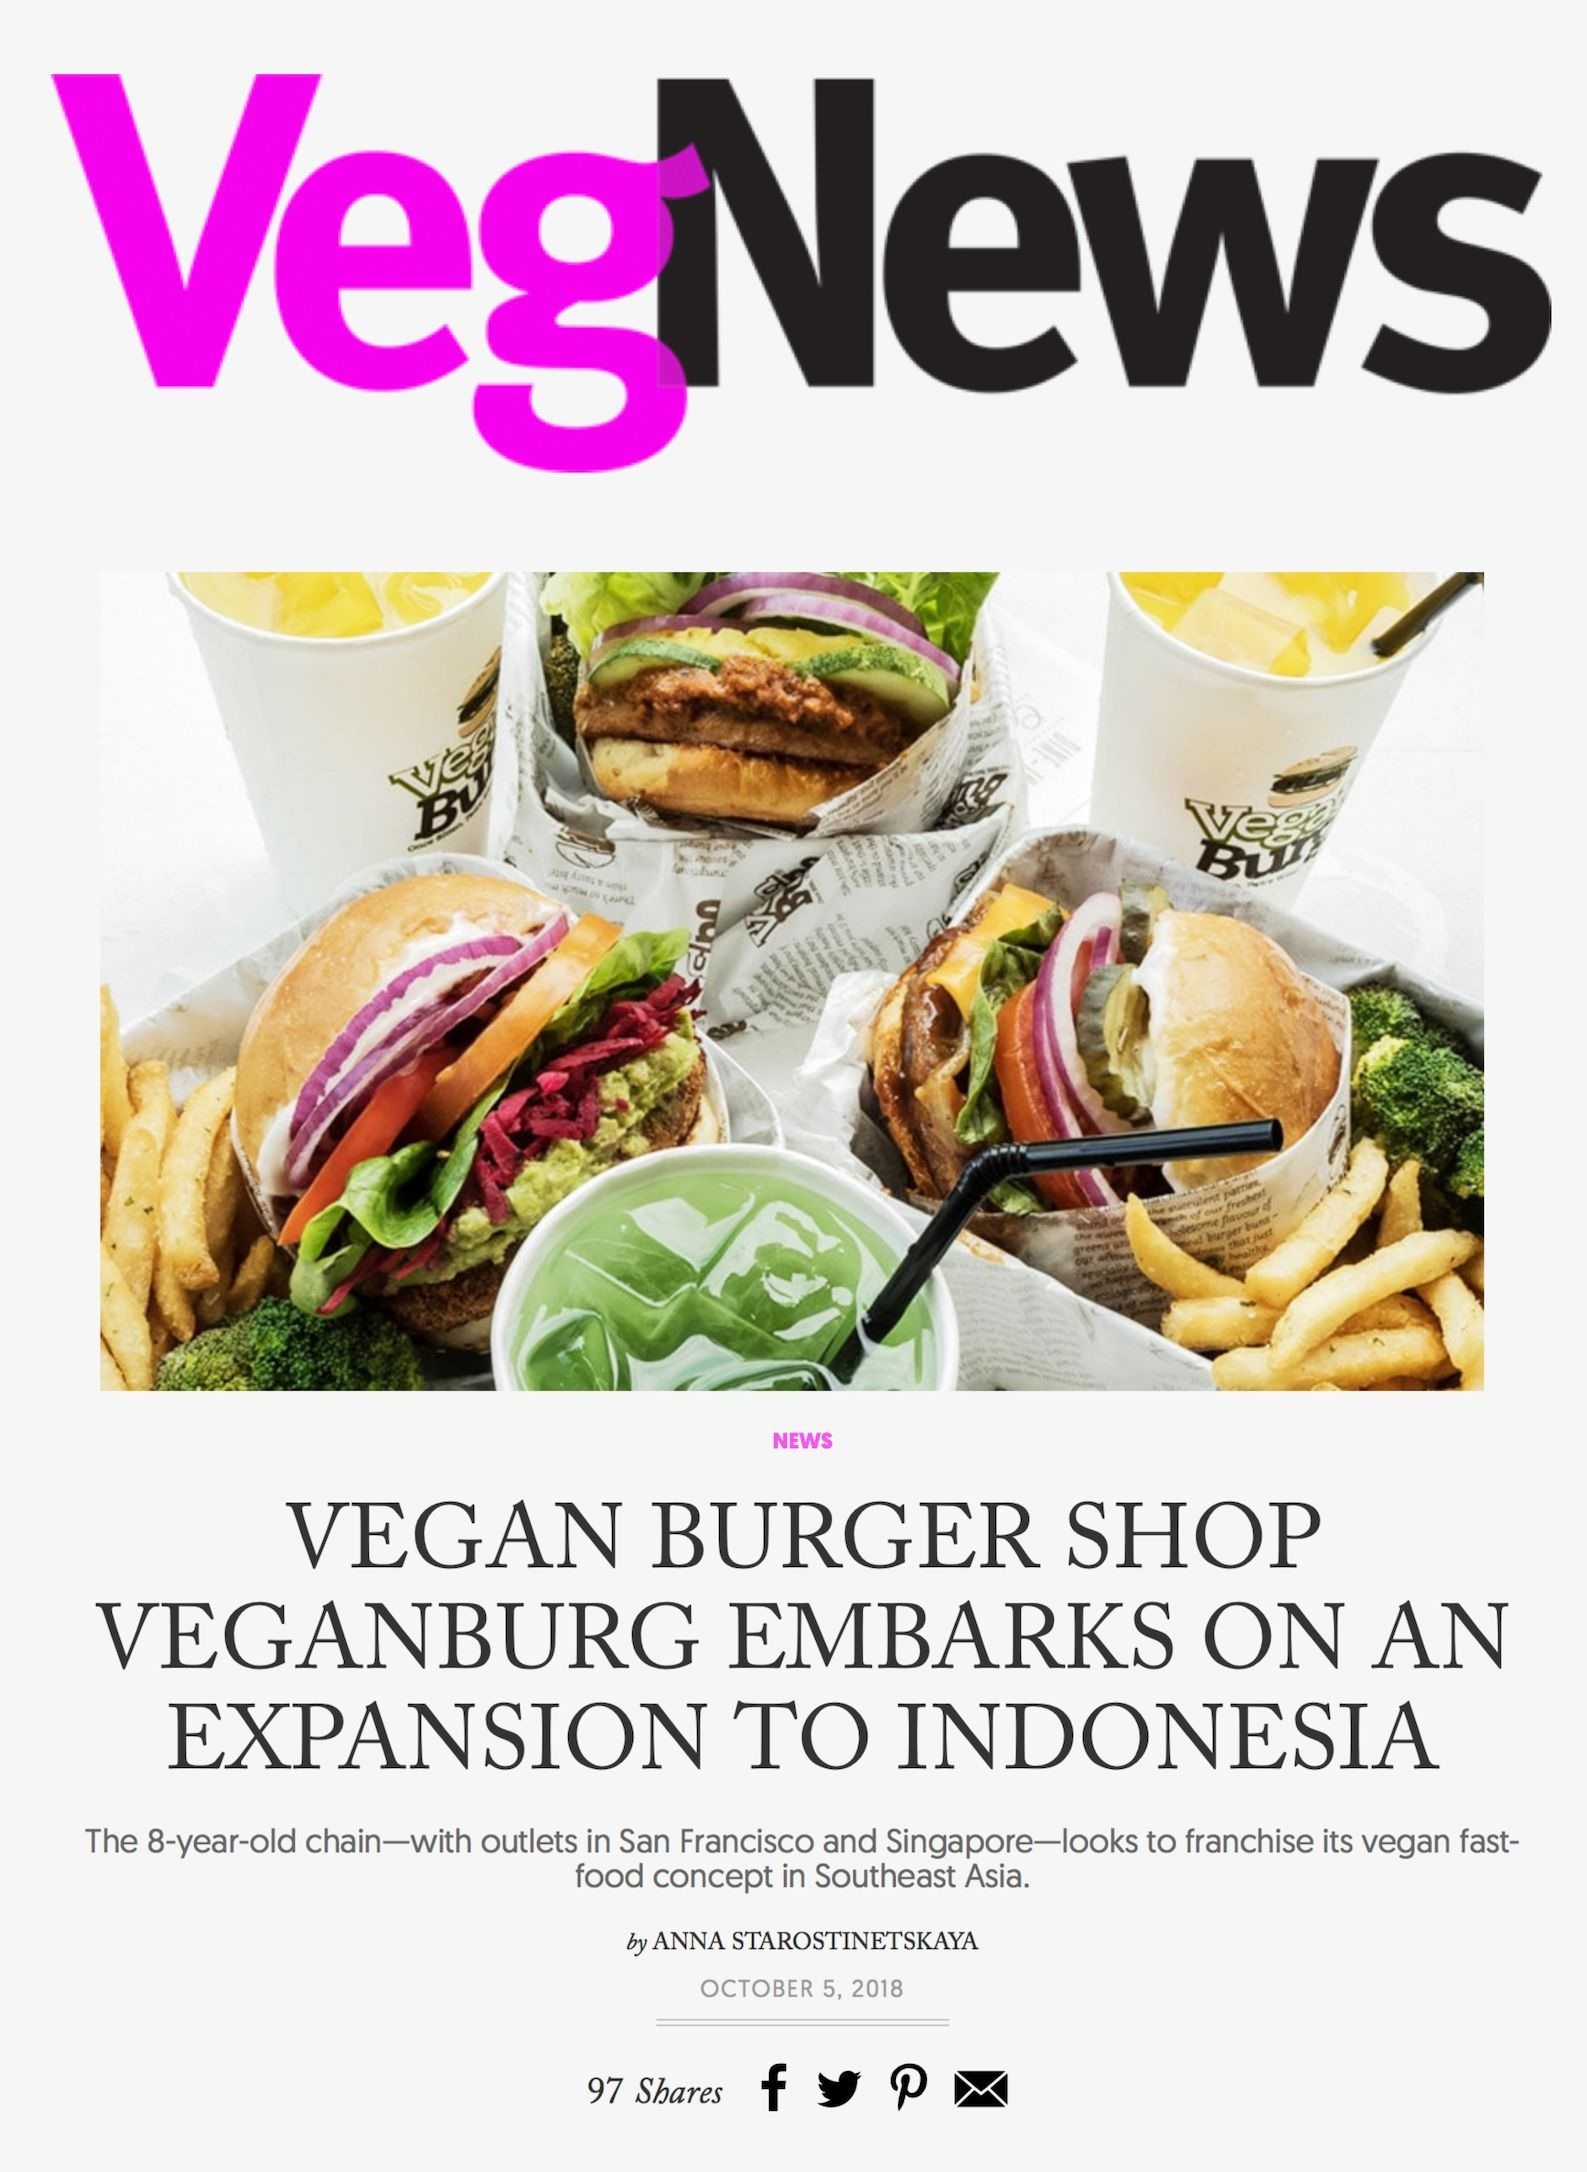 VegNews_+VEGAN+BURGER+SHOP+VEGANBURG+EMBARKS+ON+AN+EXPANSION+TO+INDONESIA.jpg